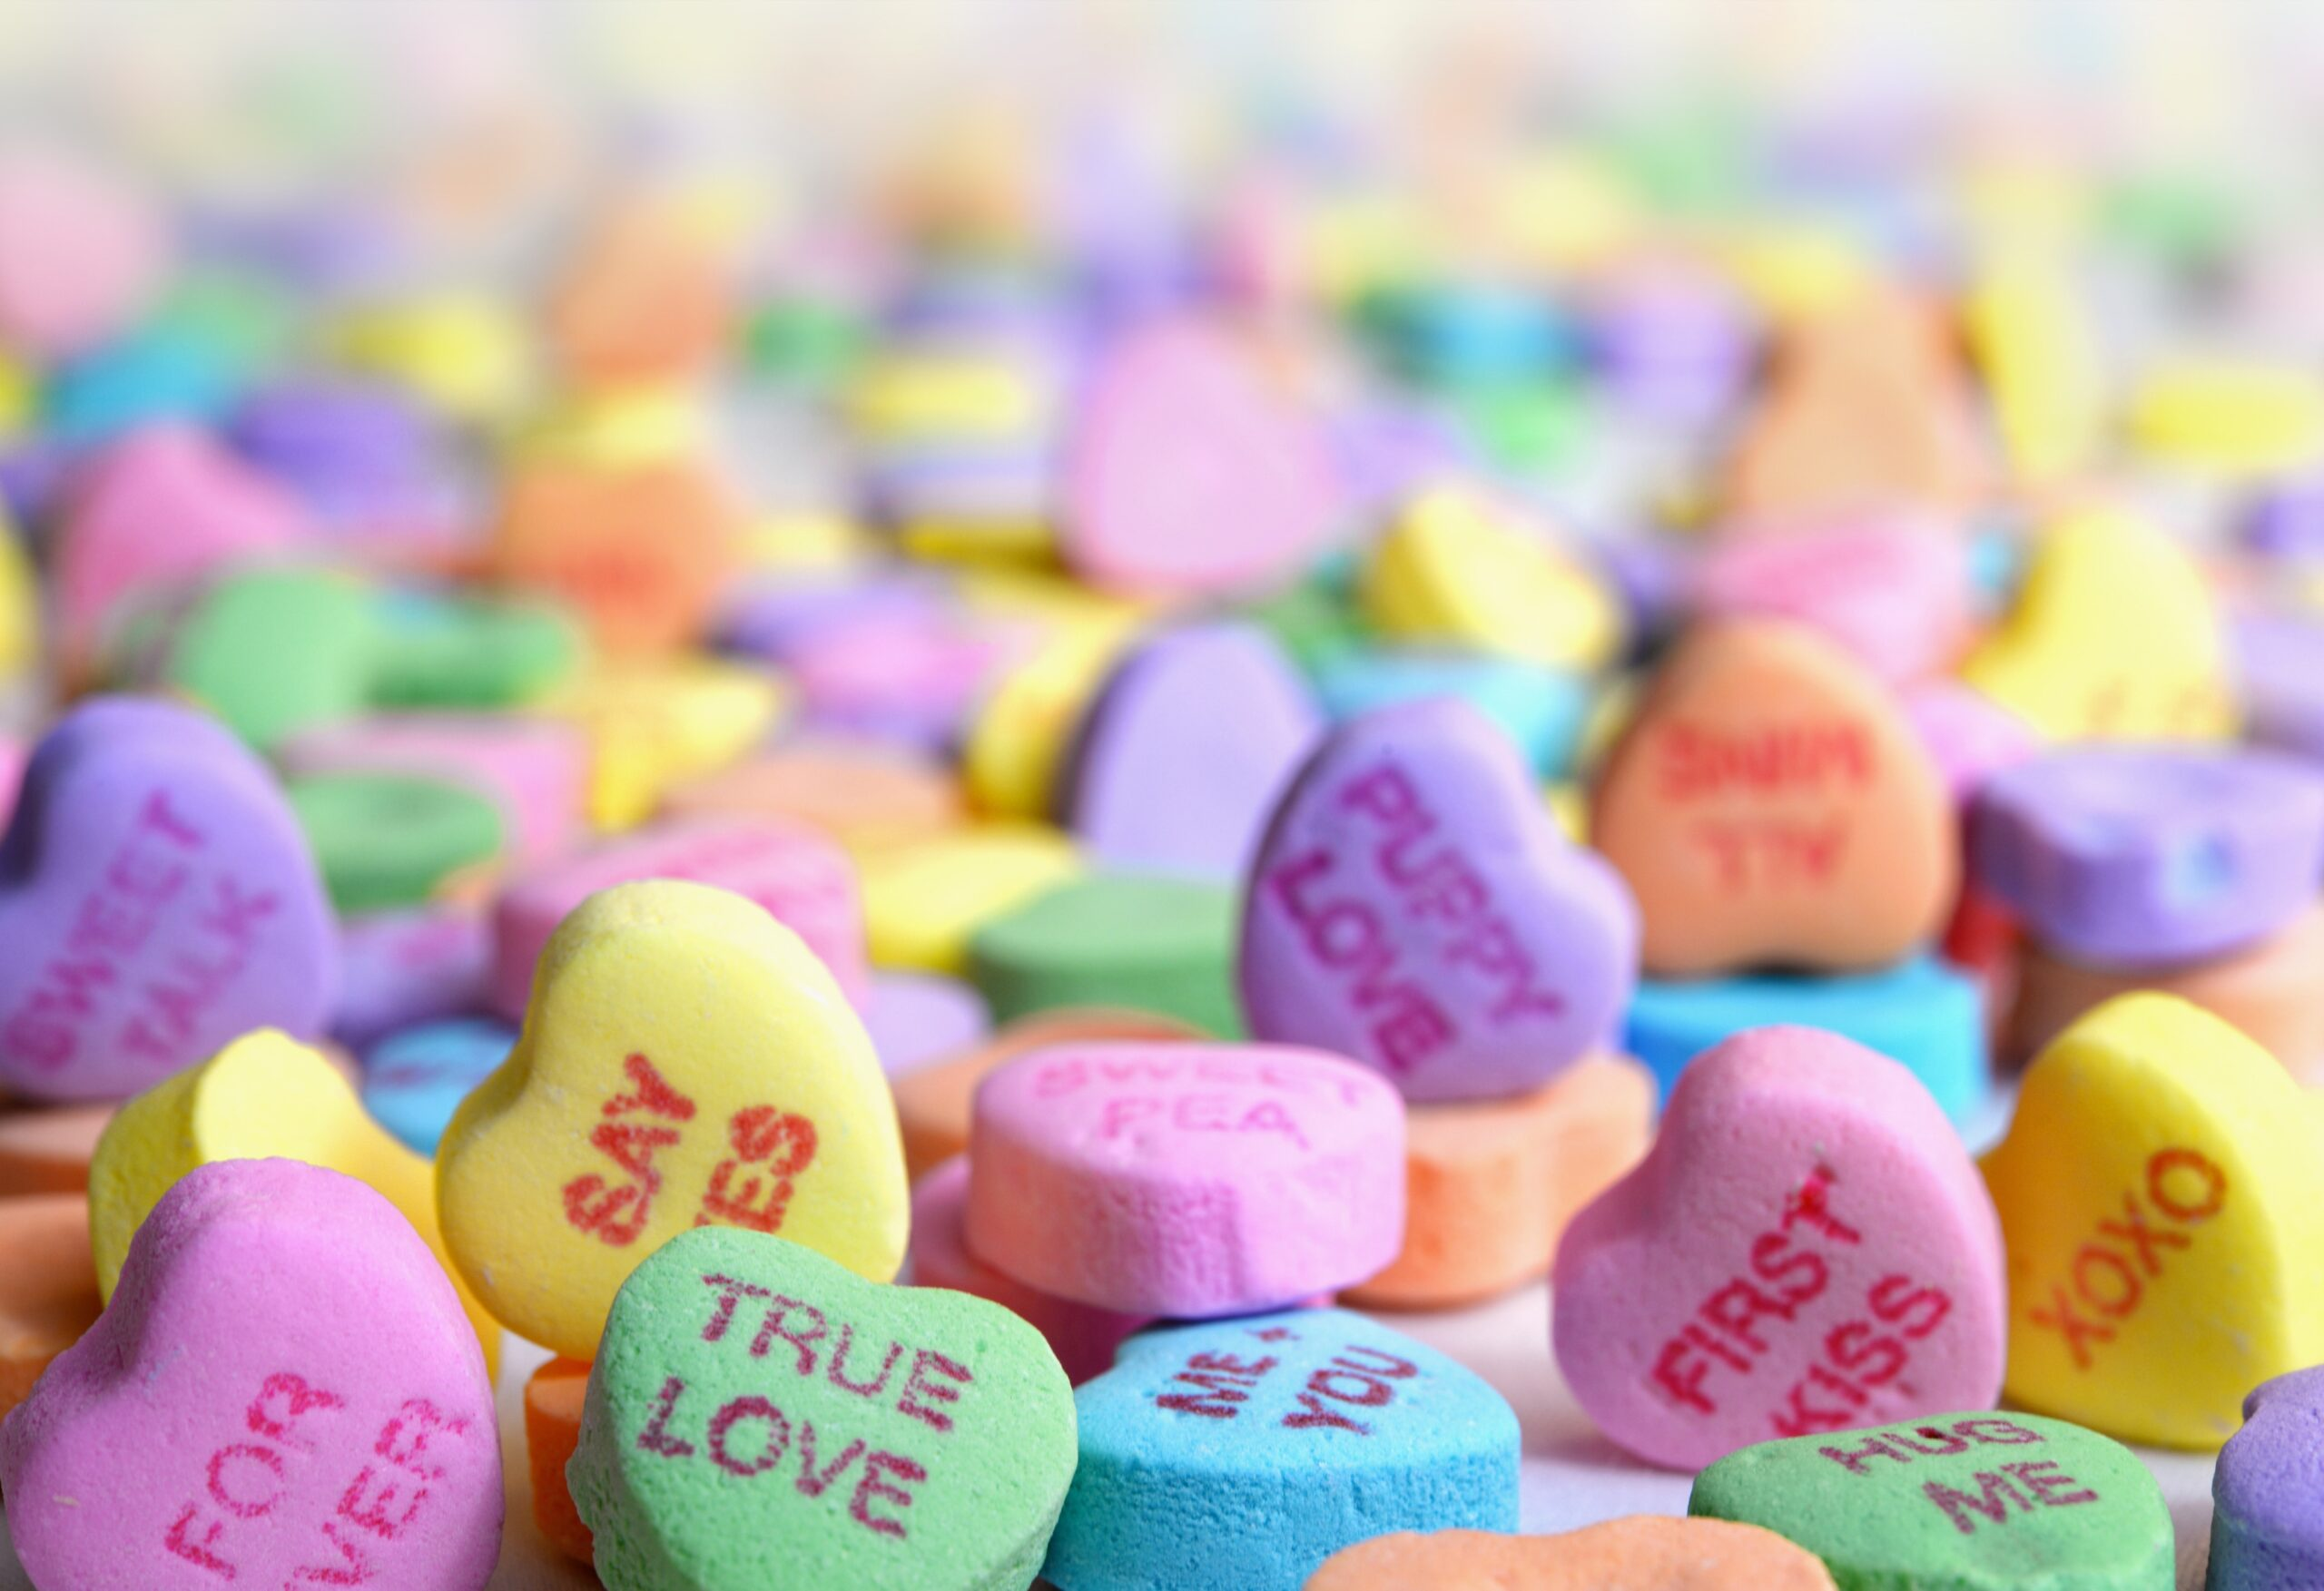 Valentine's Day Gifts For The CrossFitter